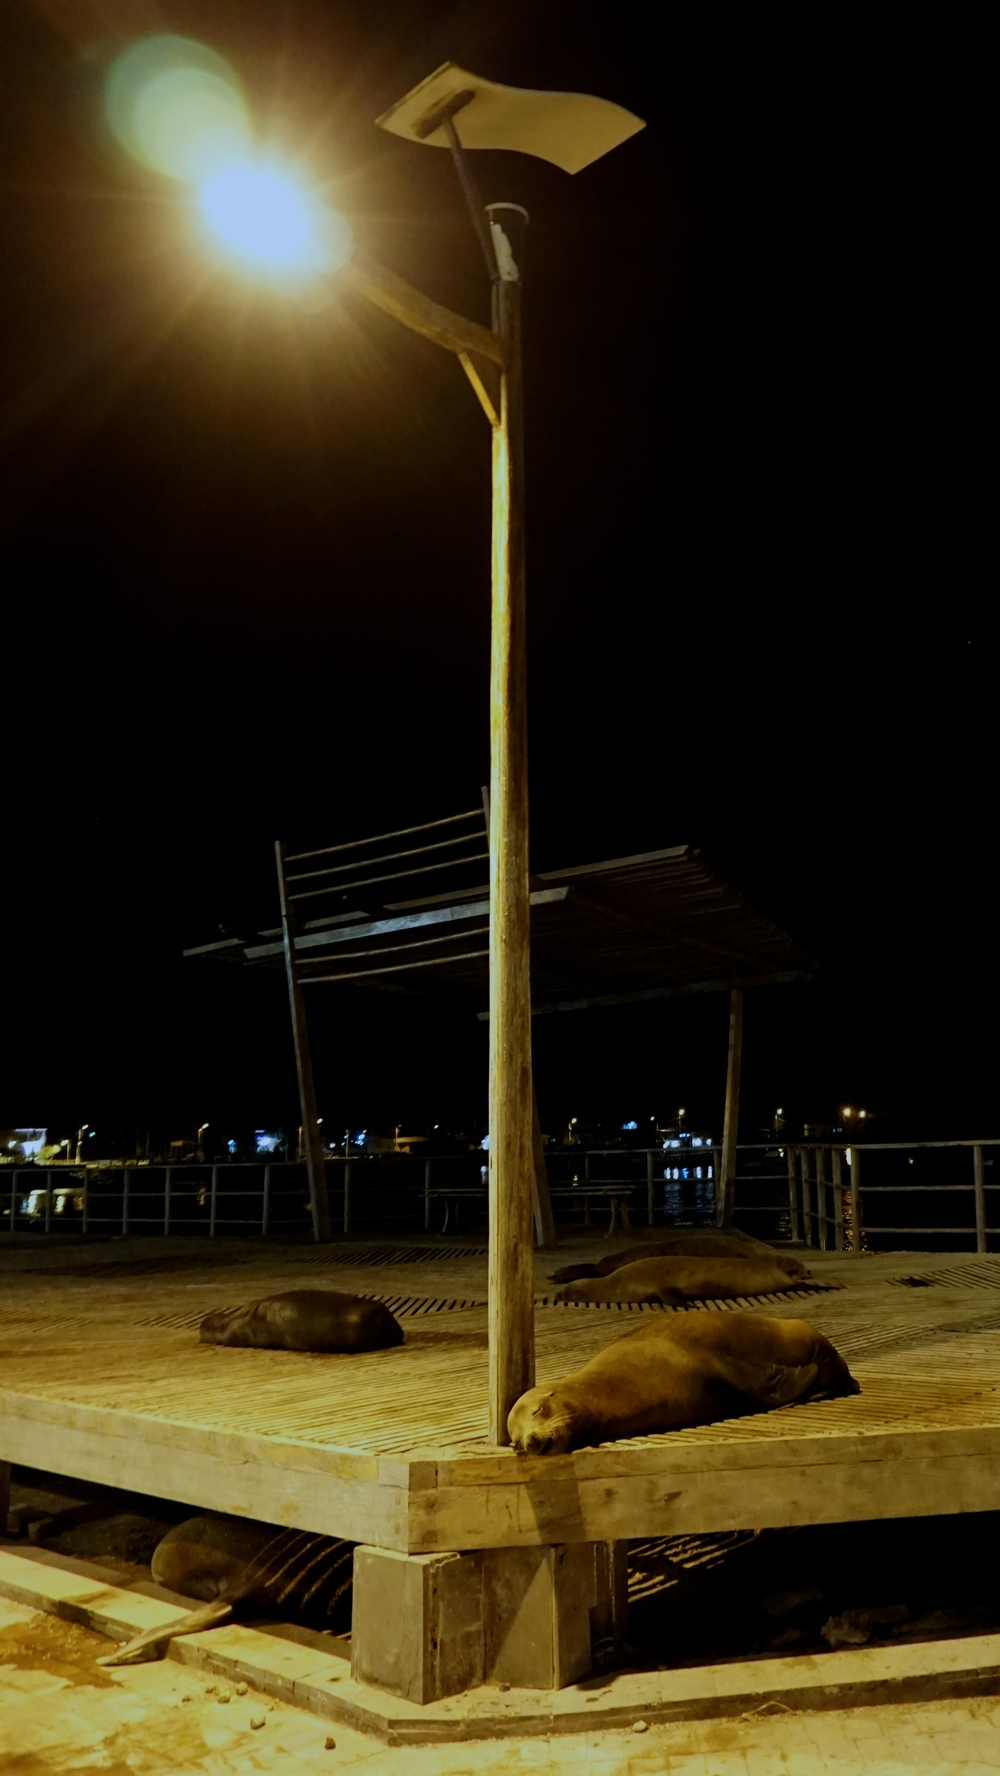 Is this real life? Of course sea lions are just napping under streetlights and on benches... that's a thing...